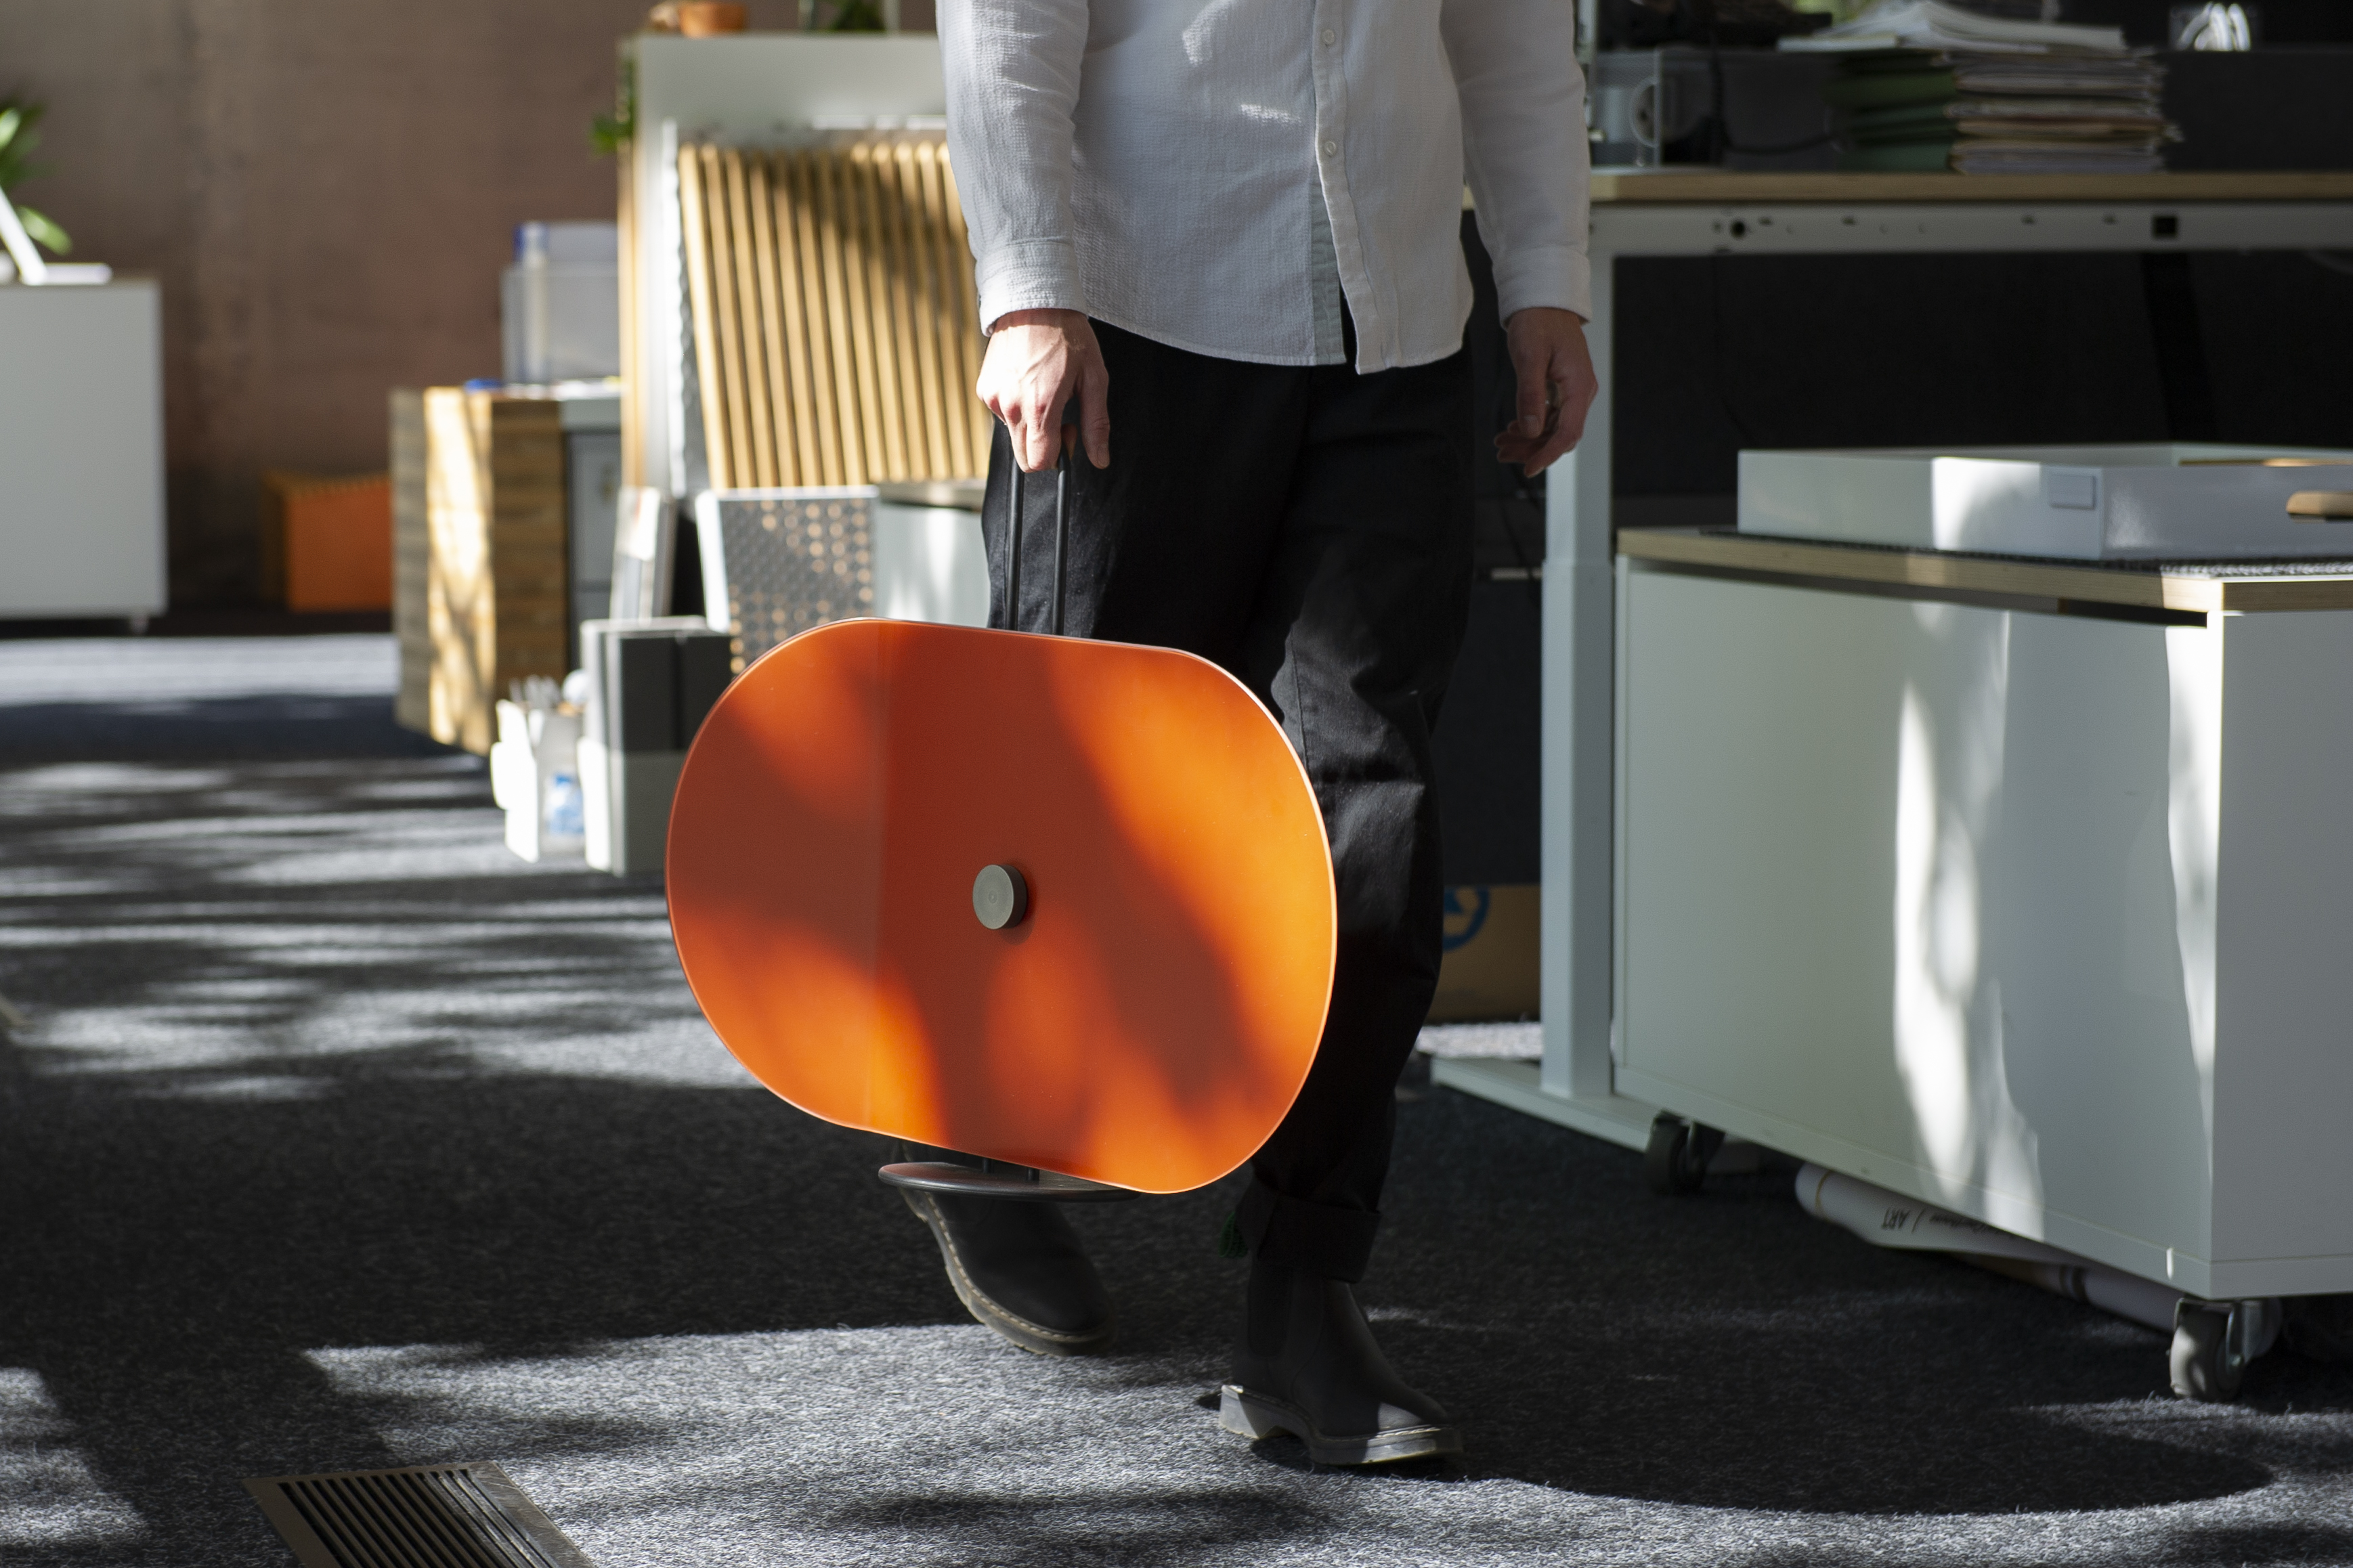 Office worker carrying an orange Taskshade while they walk down a daylit hallway.